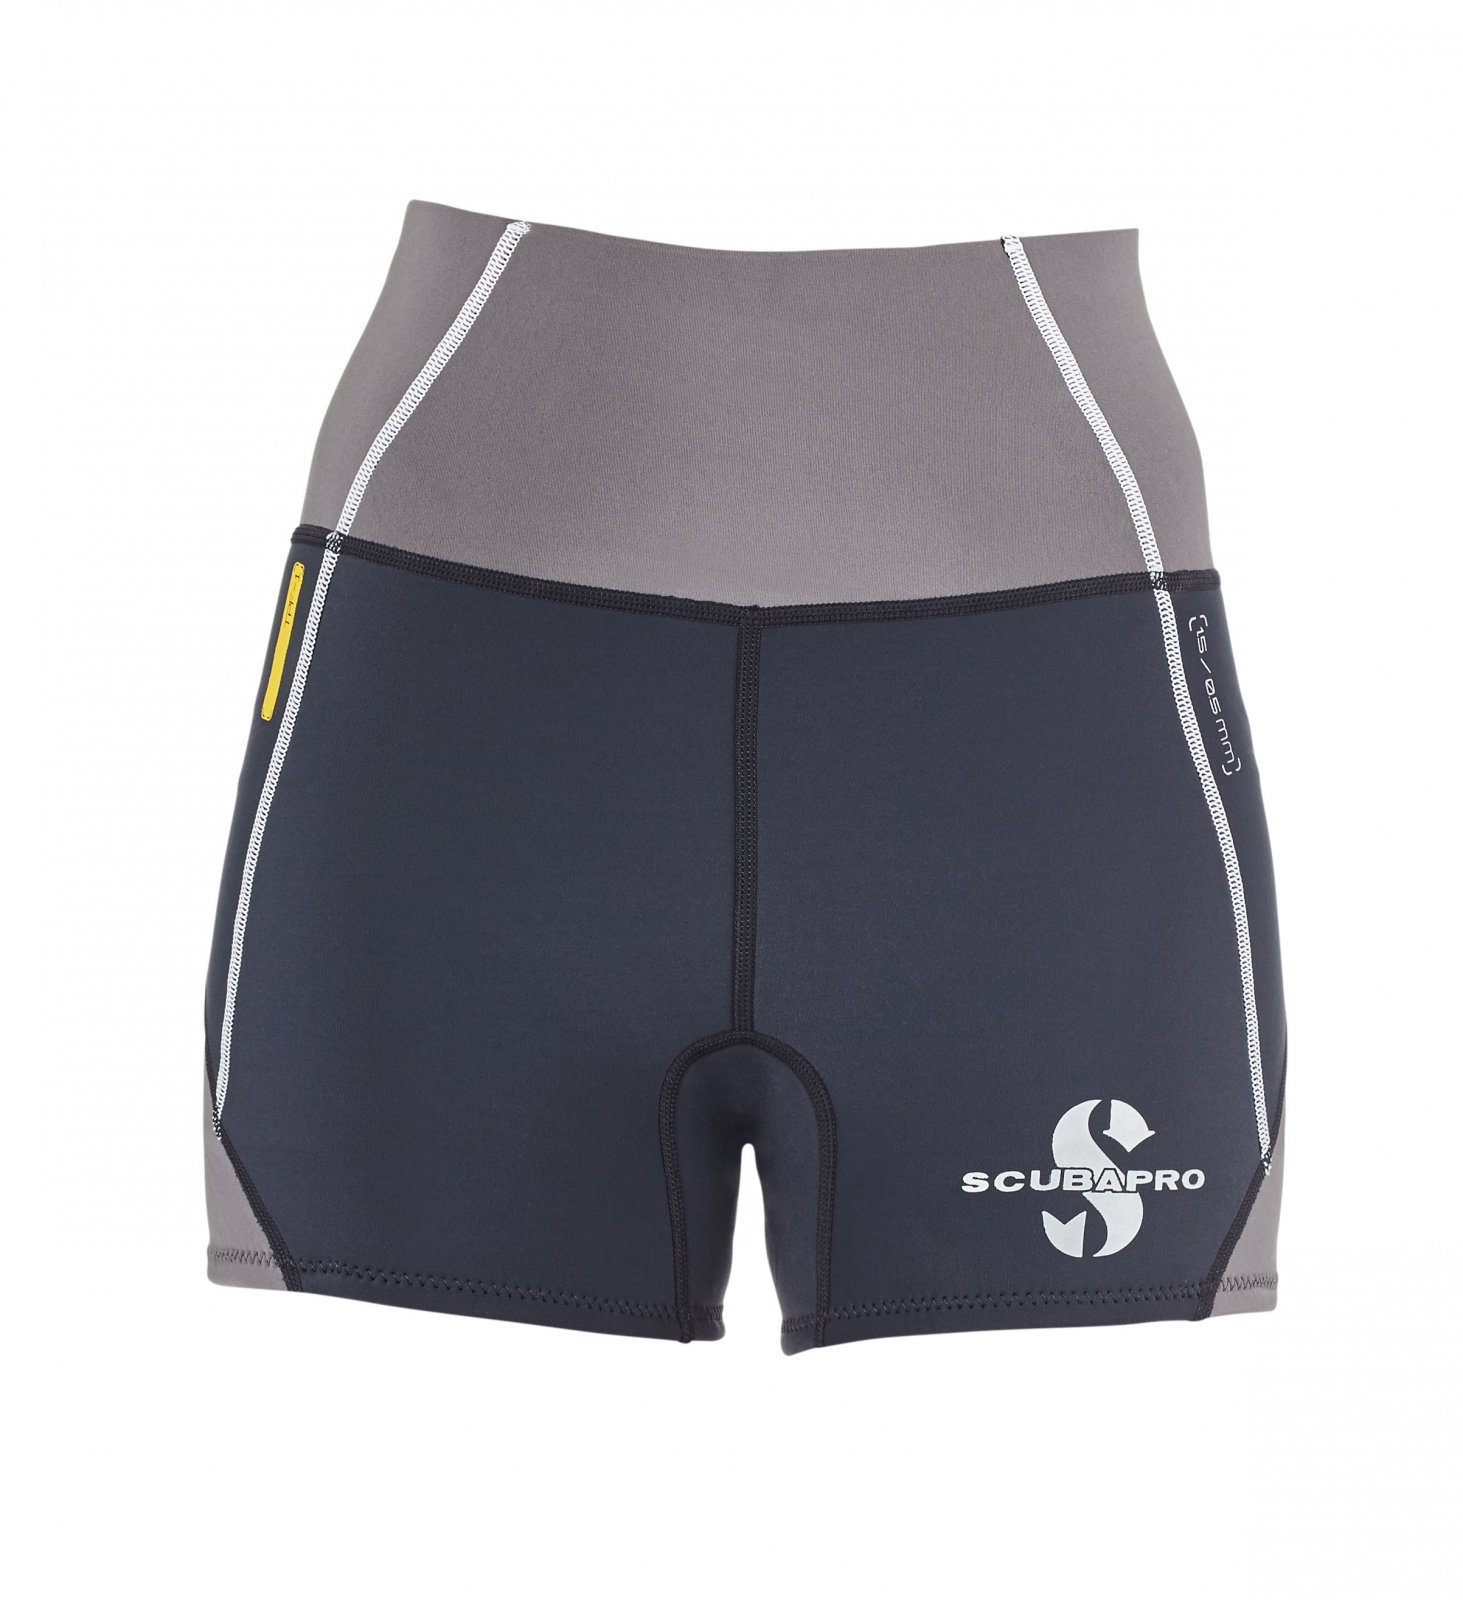 Scubapro Everflex 1.5 Short Women's